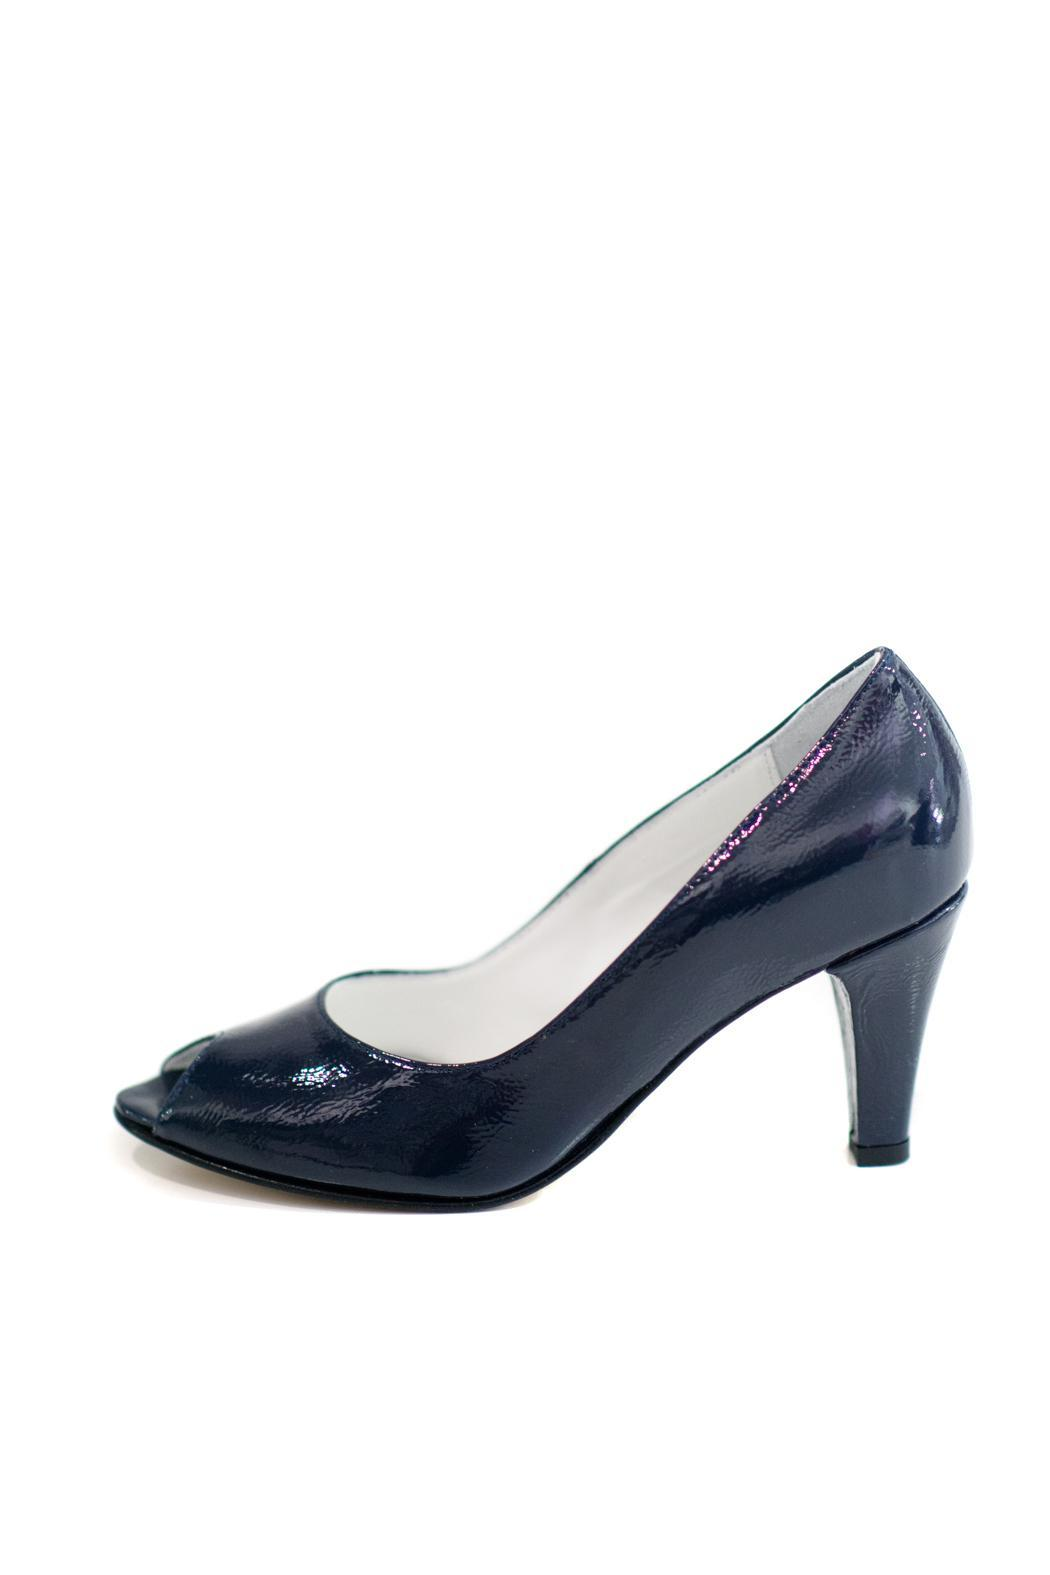 MARINA FERRANTI Navy Blue Patent Leather Pump - Front Cropped Image